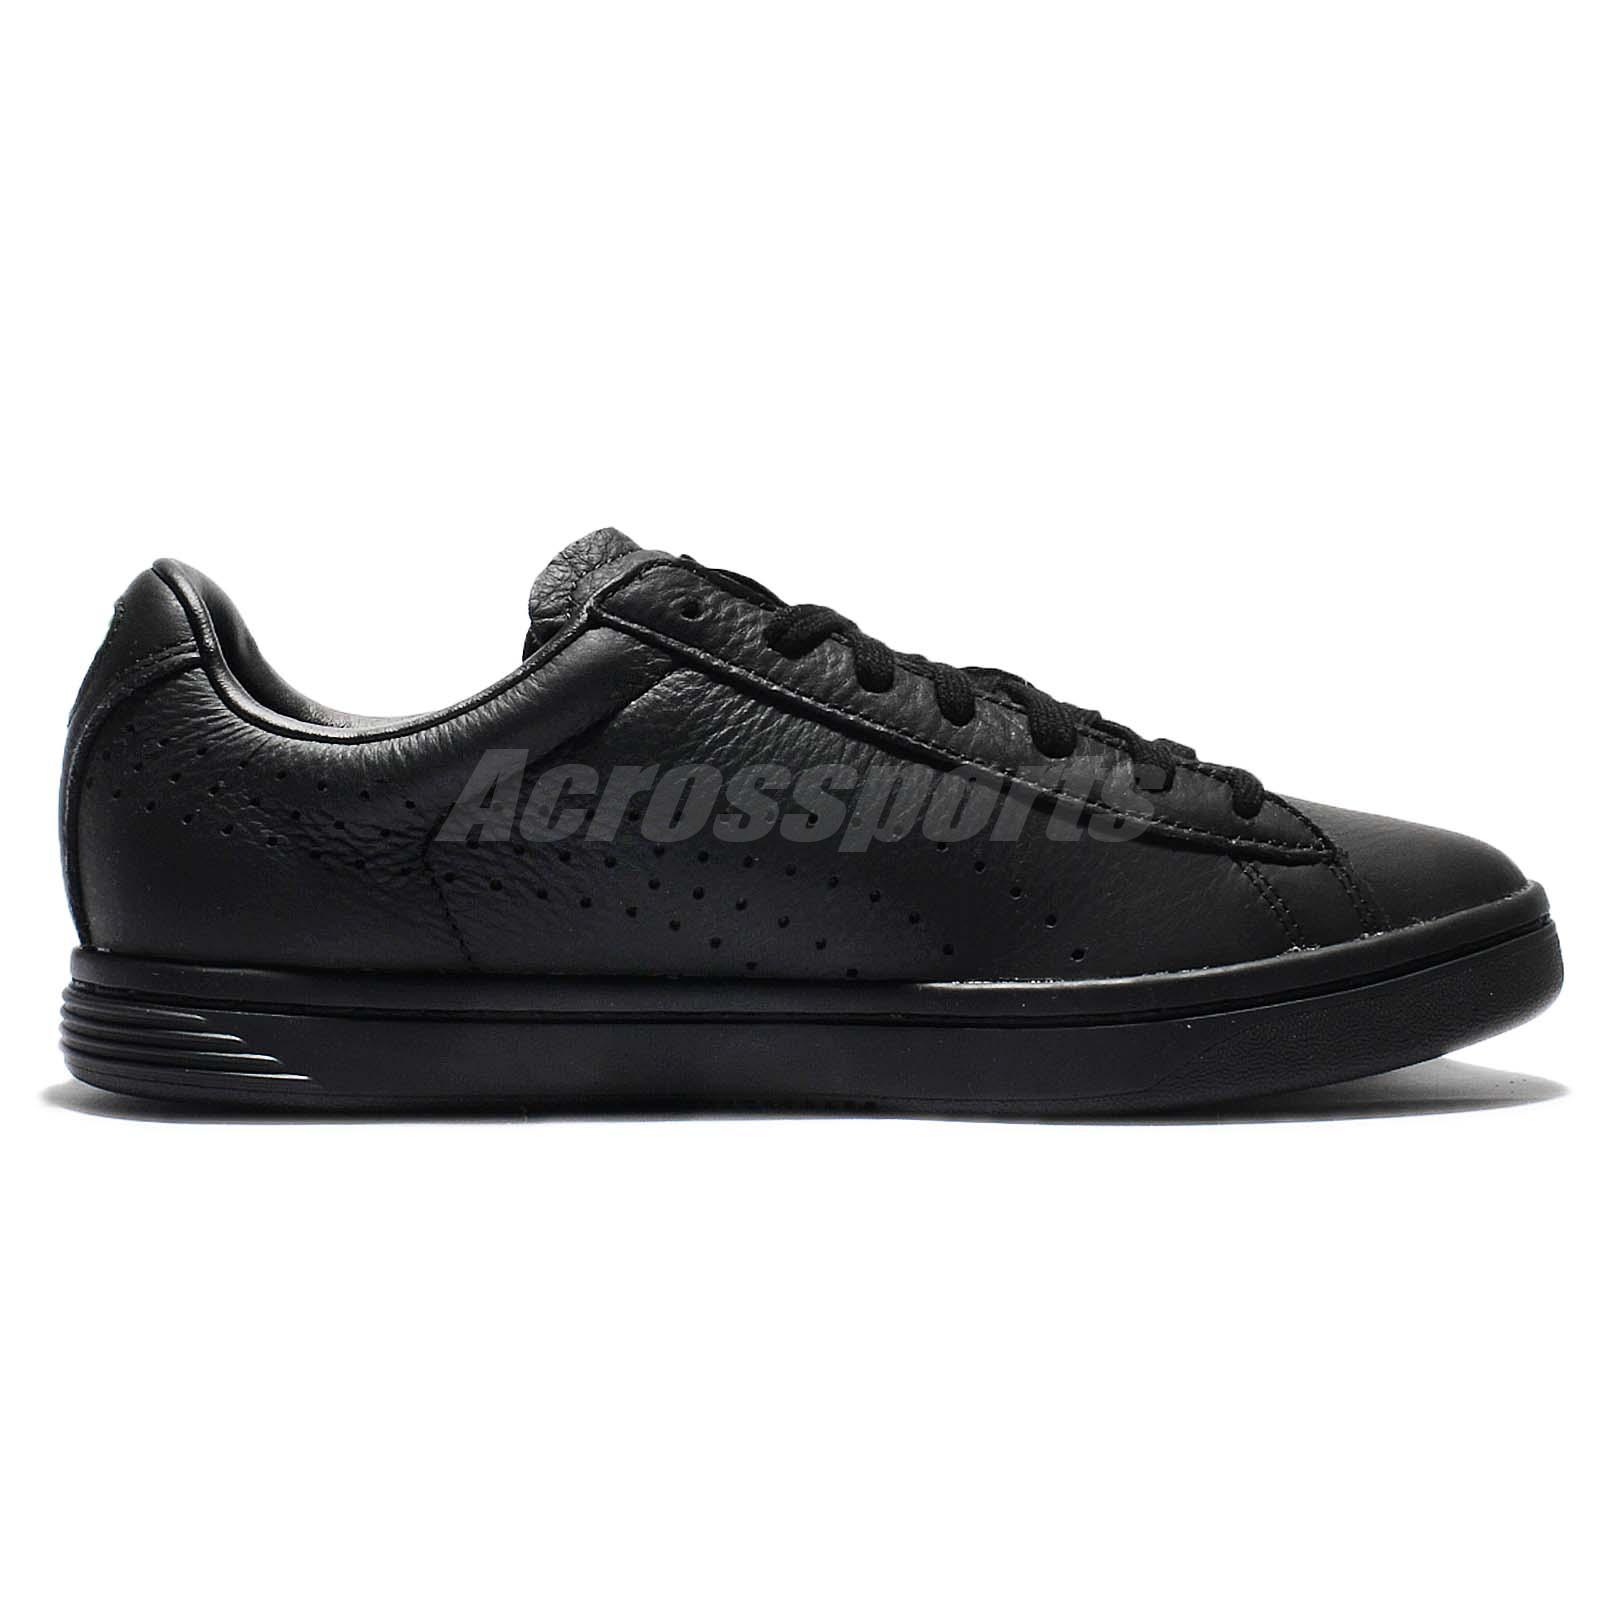 low priced 4fd87 30a88 Details about Puma Court Star NM Triple Black Leather Men Casual Shoes  Sneakers 357883-13